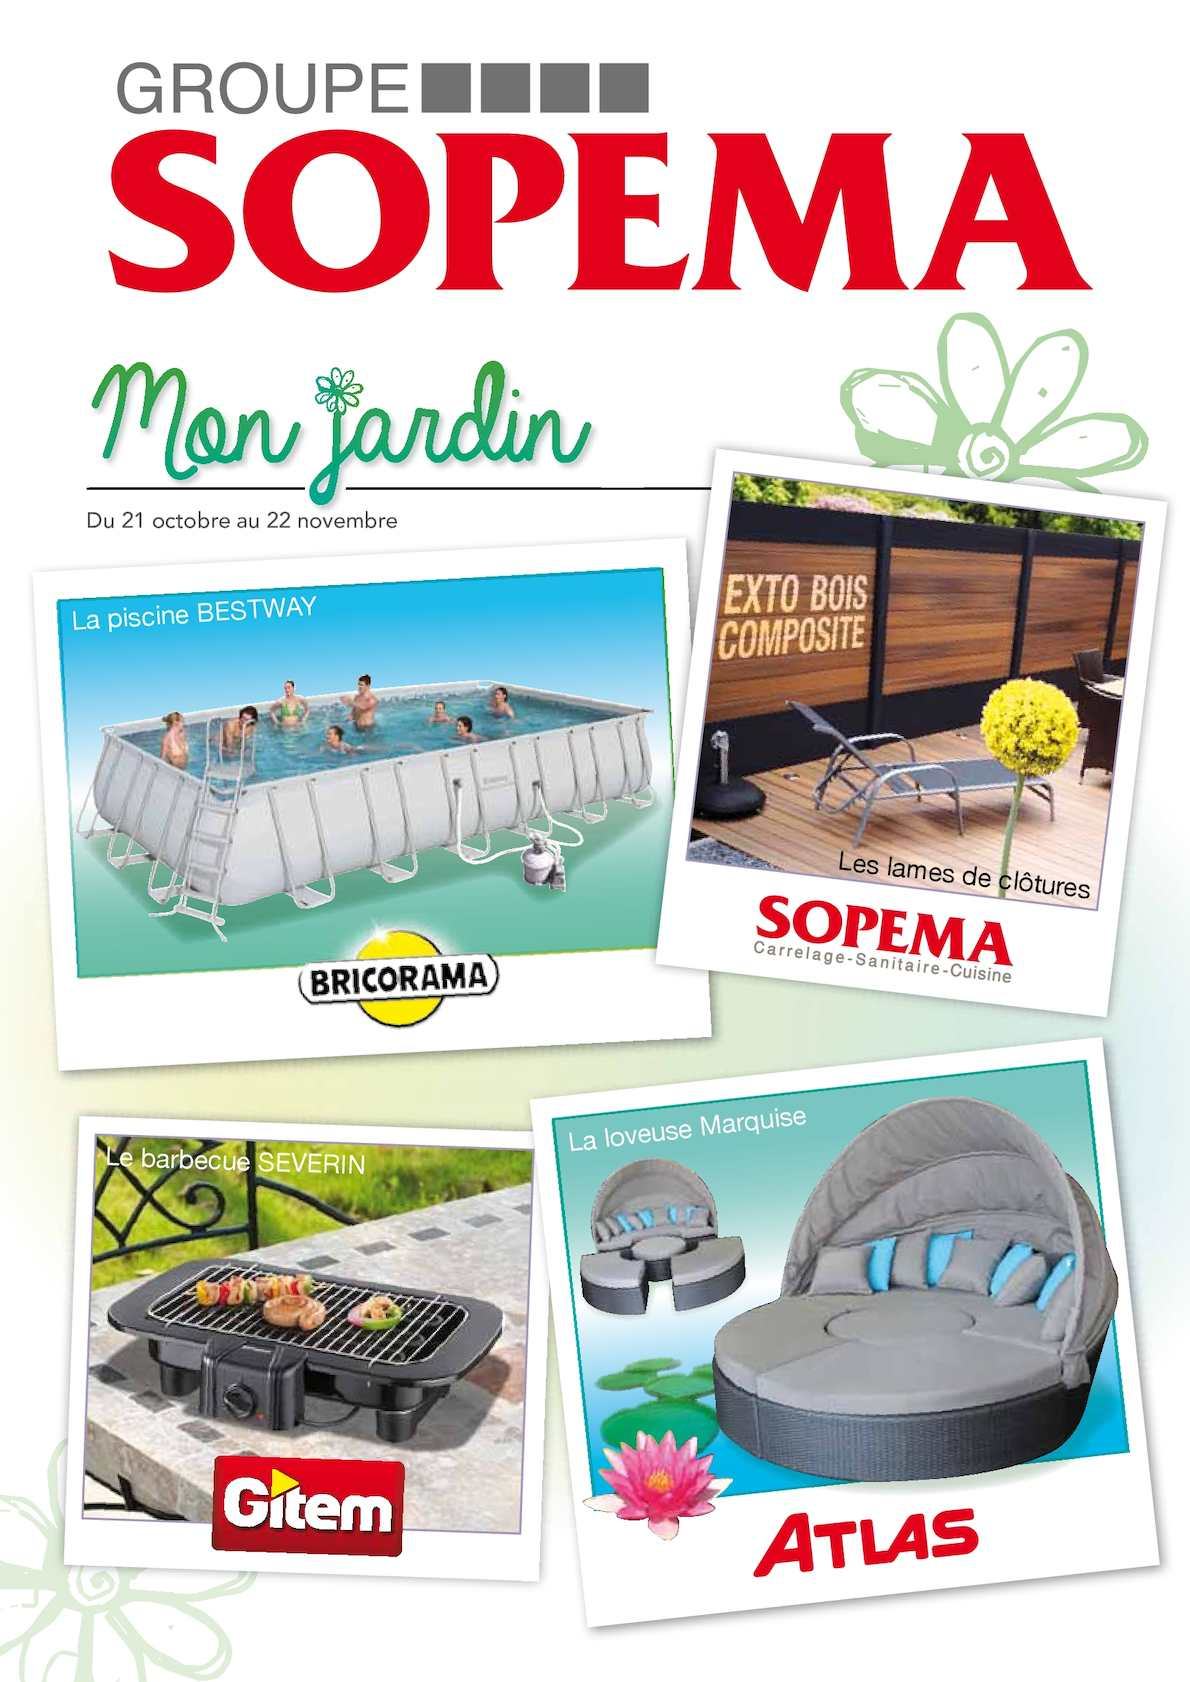 Calam o catalogue jardin du 21 10 2015 au 22 11 2015 for Catalogue jardin 2015 honda